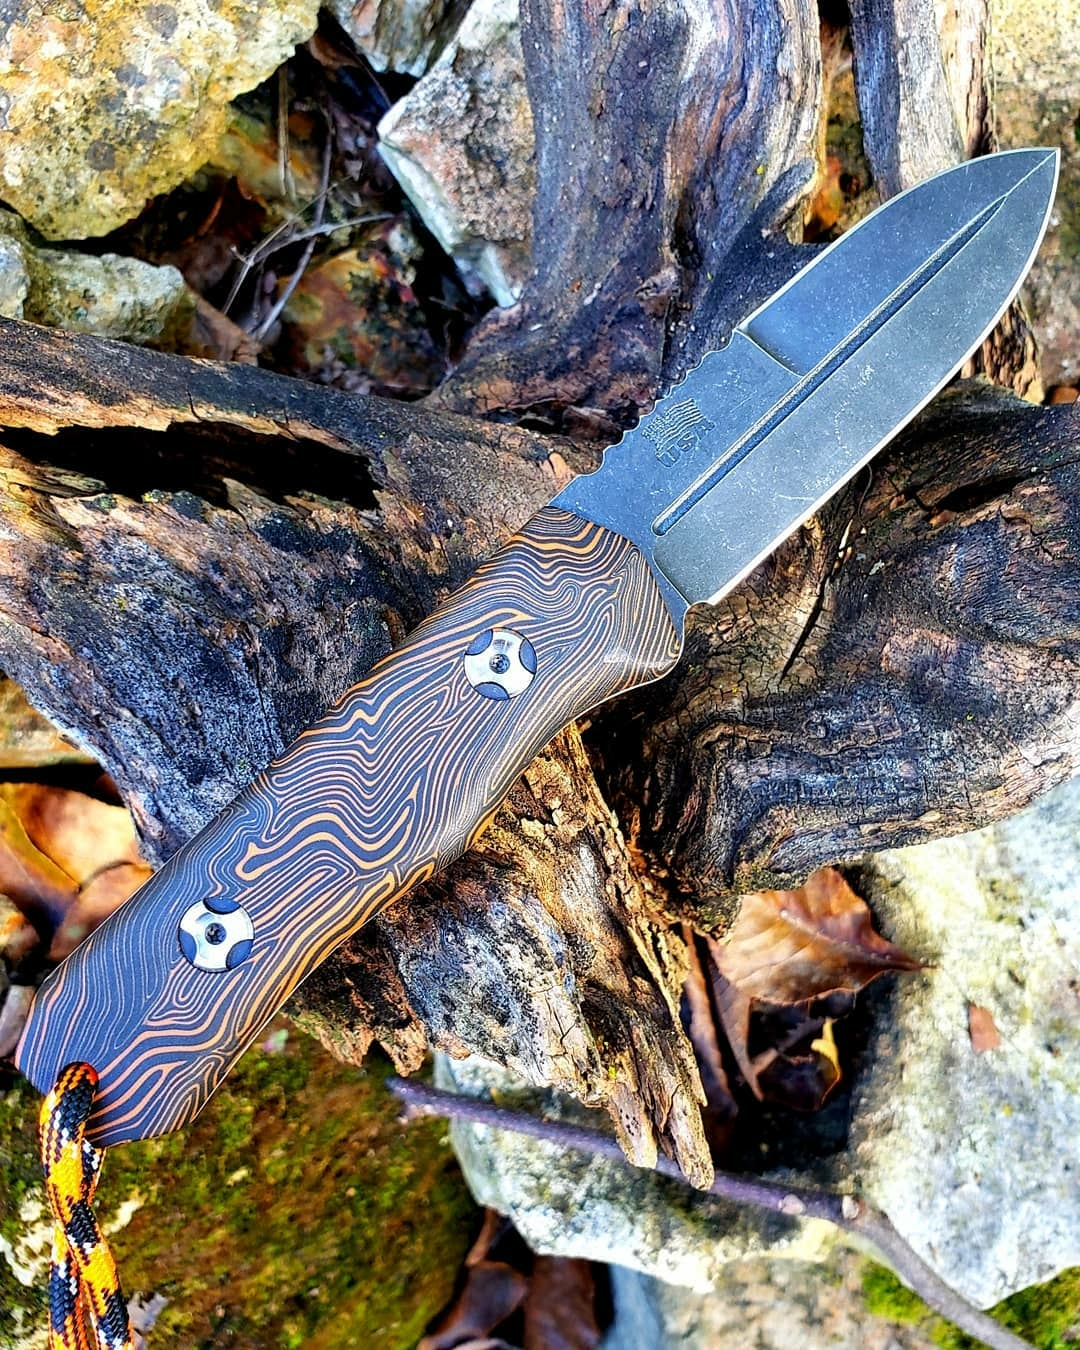 Via @osborne_knives